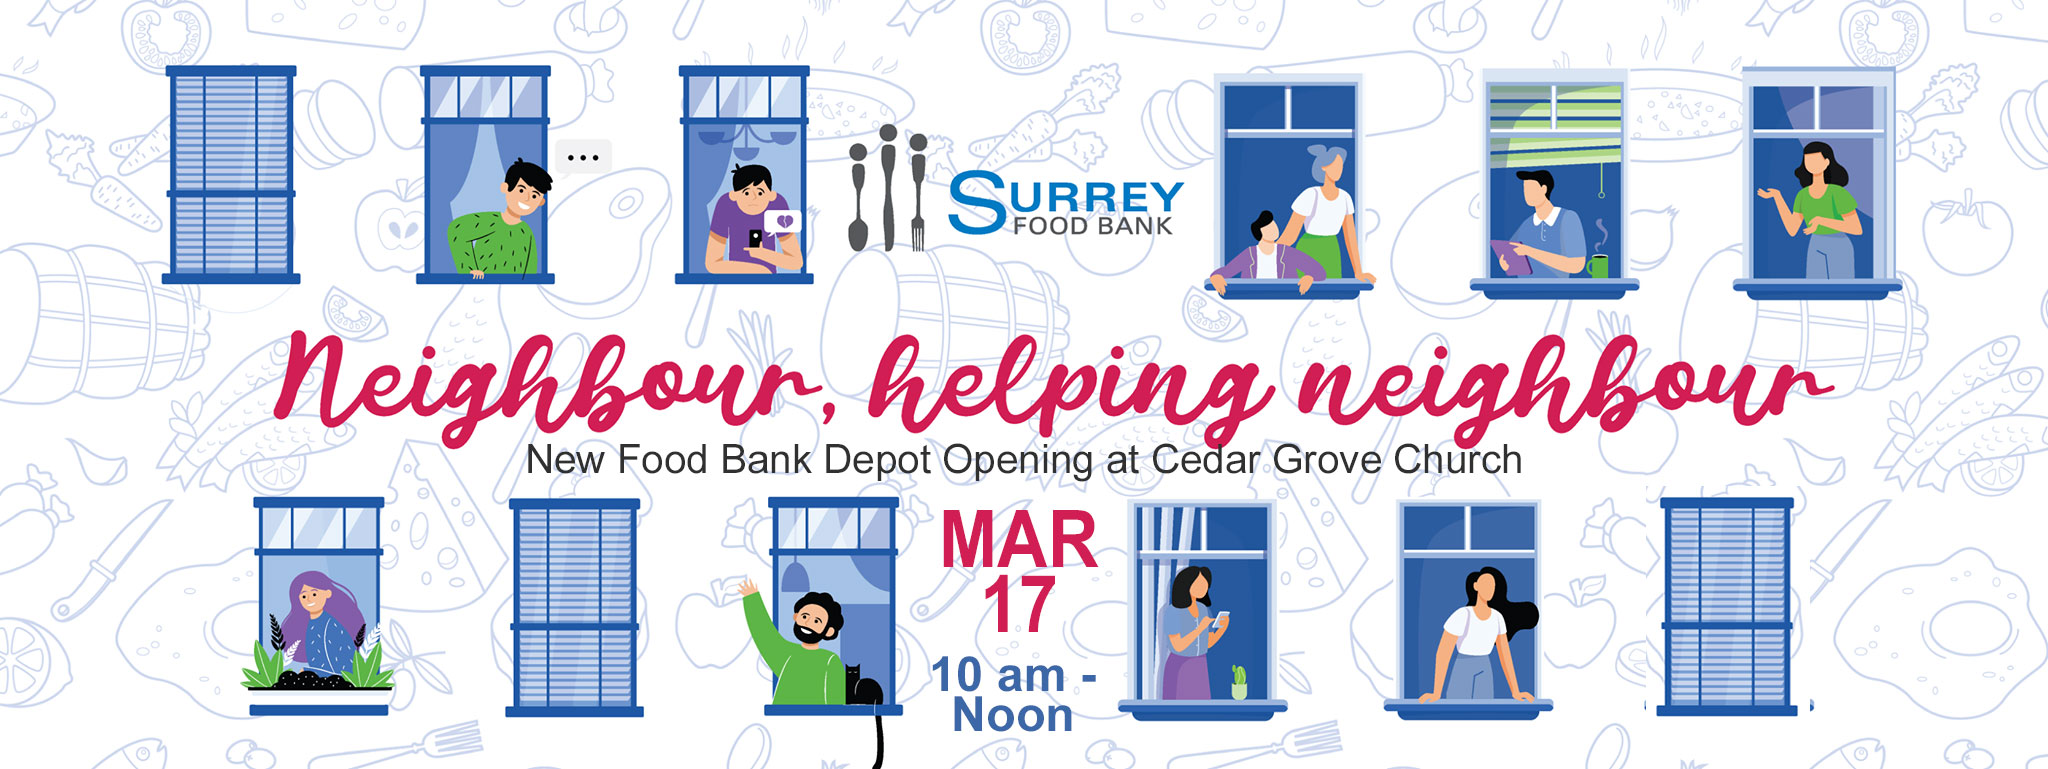 Surrey_Food_Bank_2021_RR